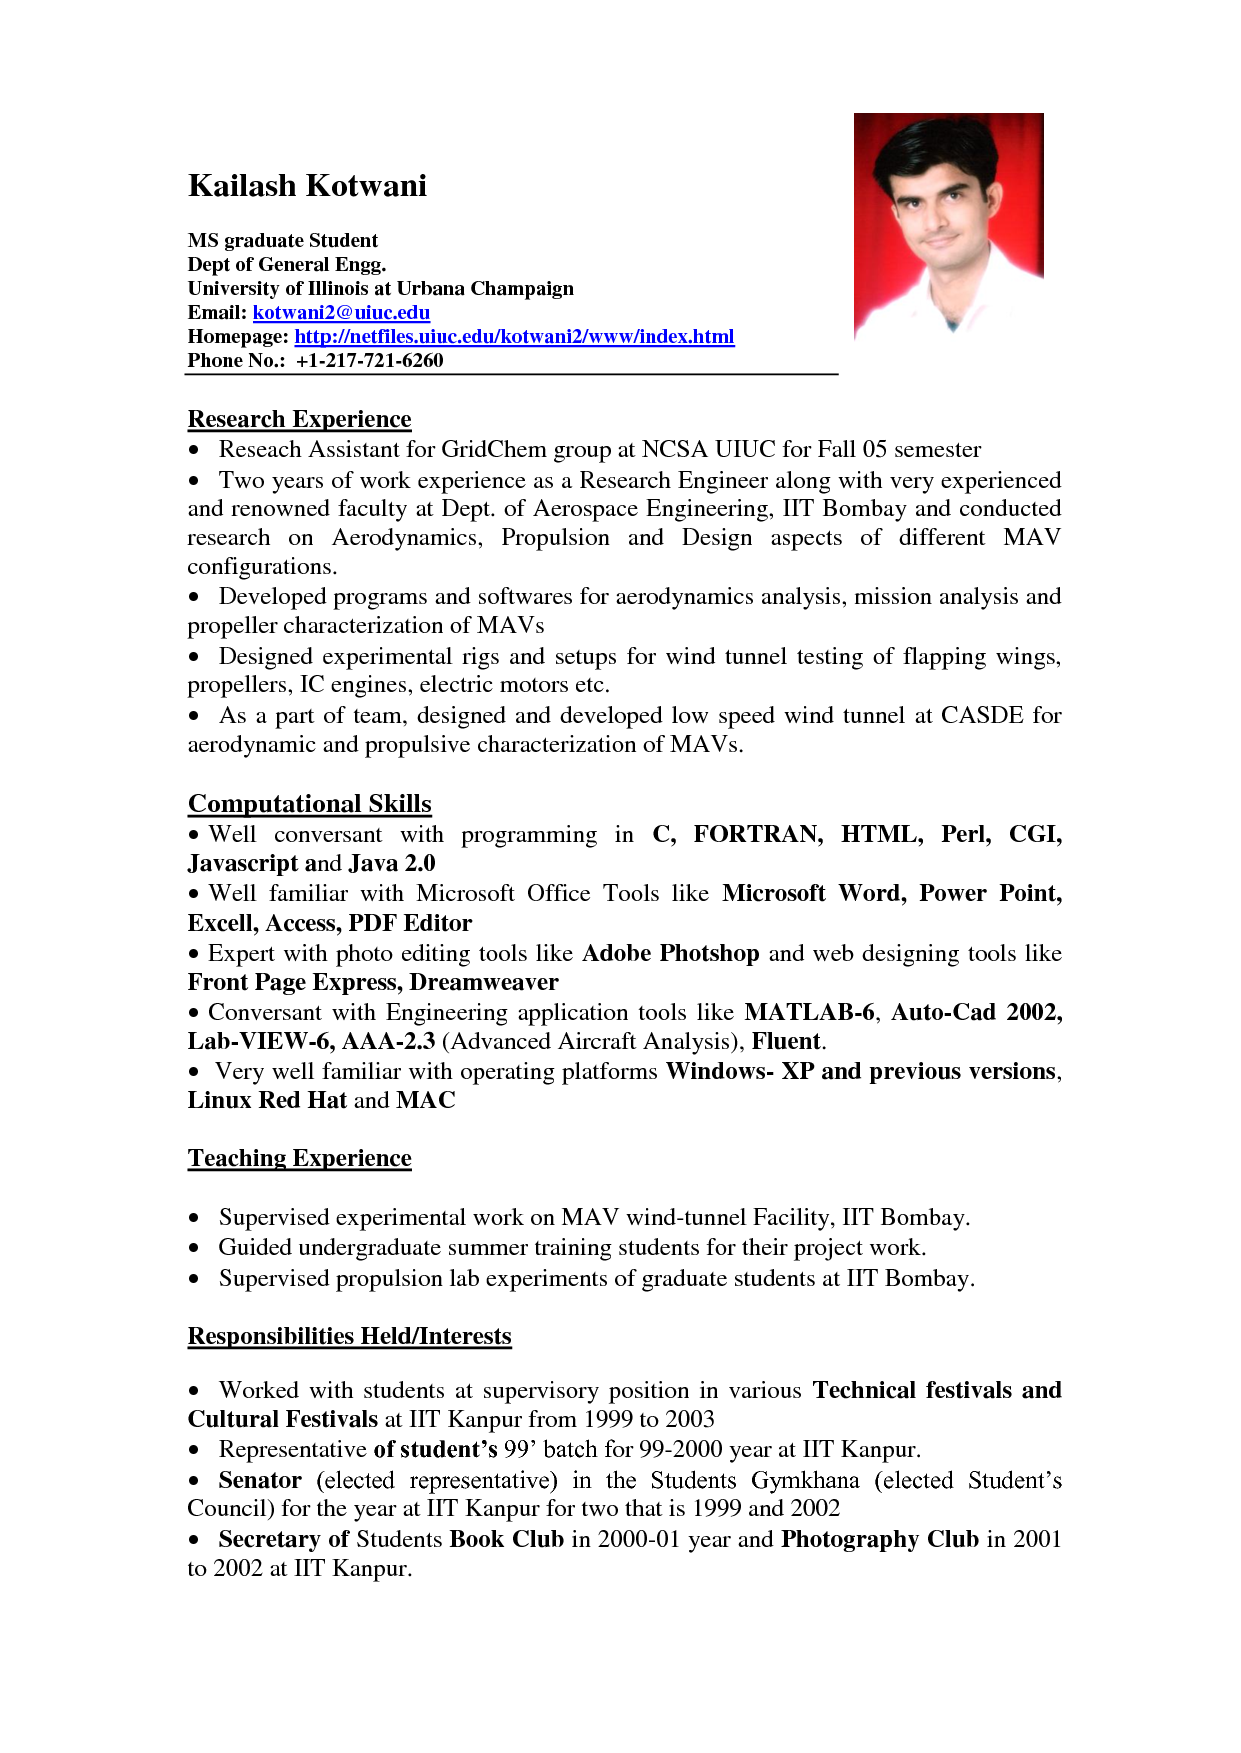 Format Of Resume For Student 11 Student Resume Samples No Experience Michi Pinterest